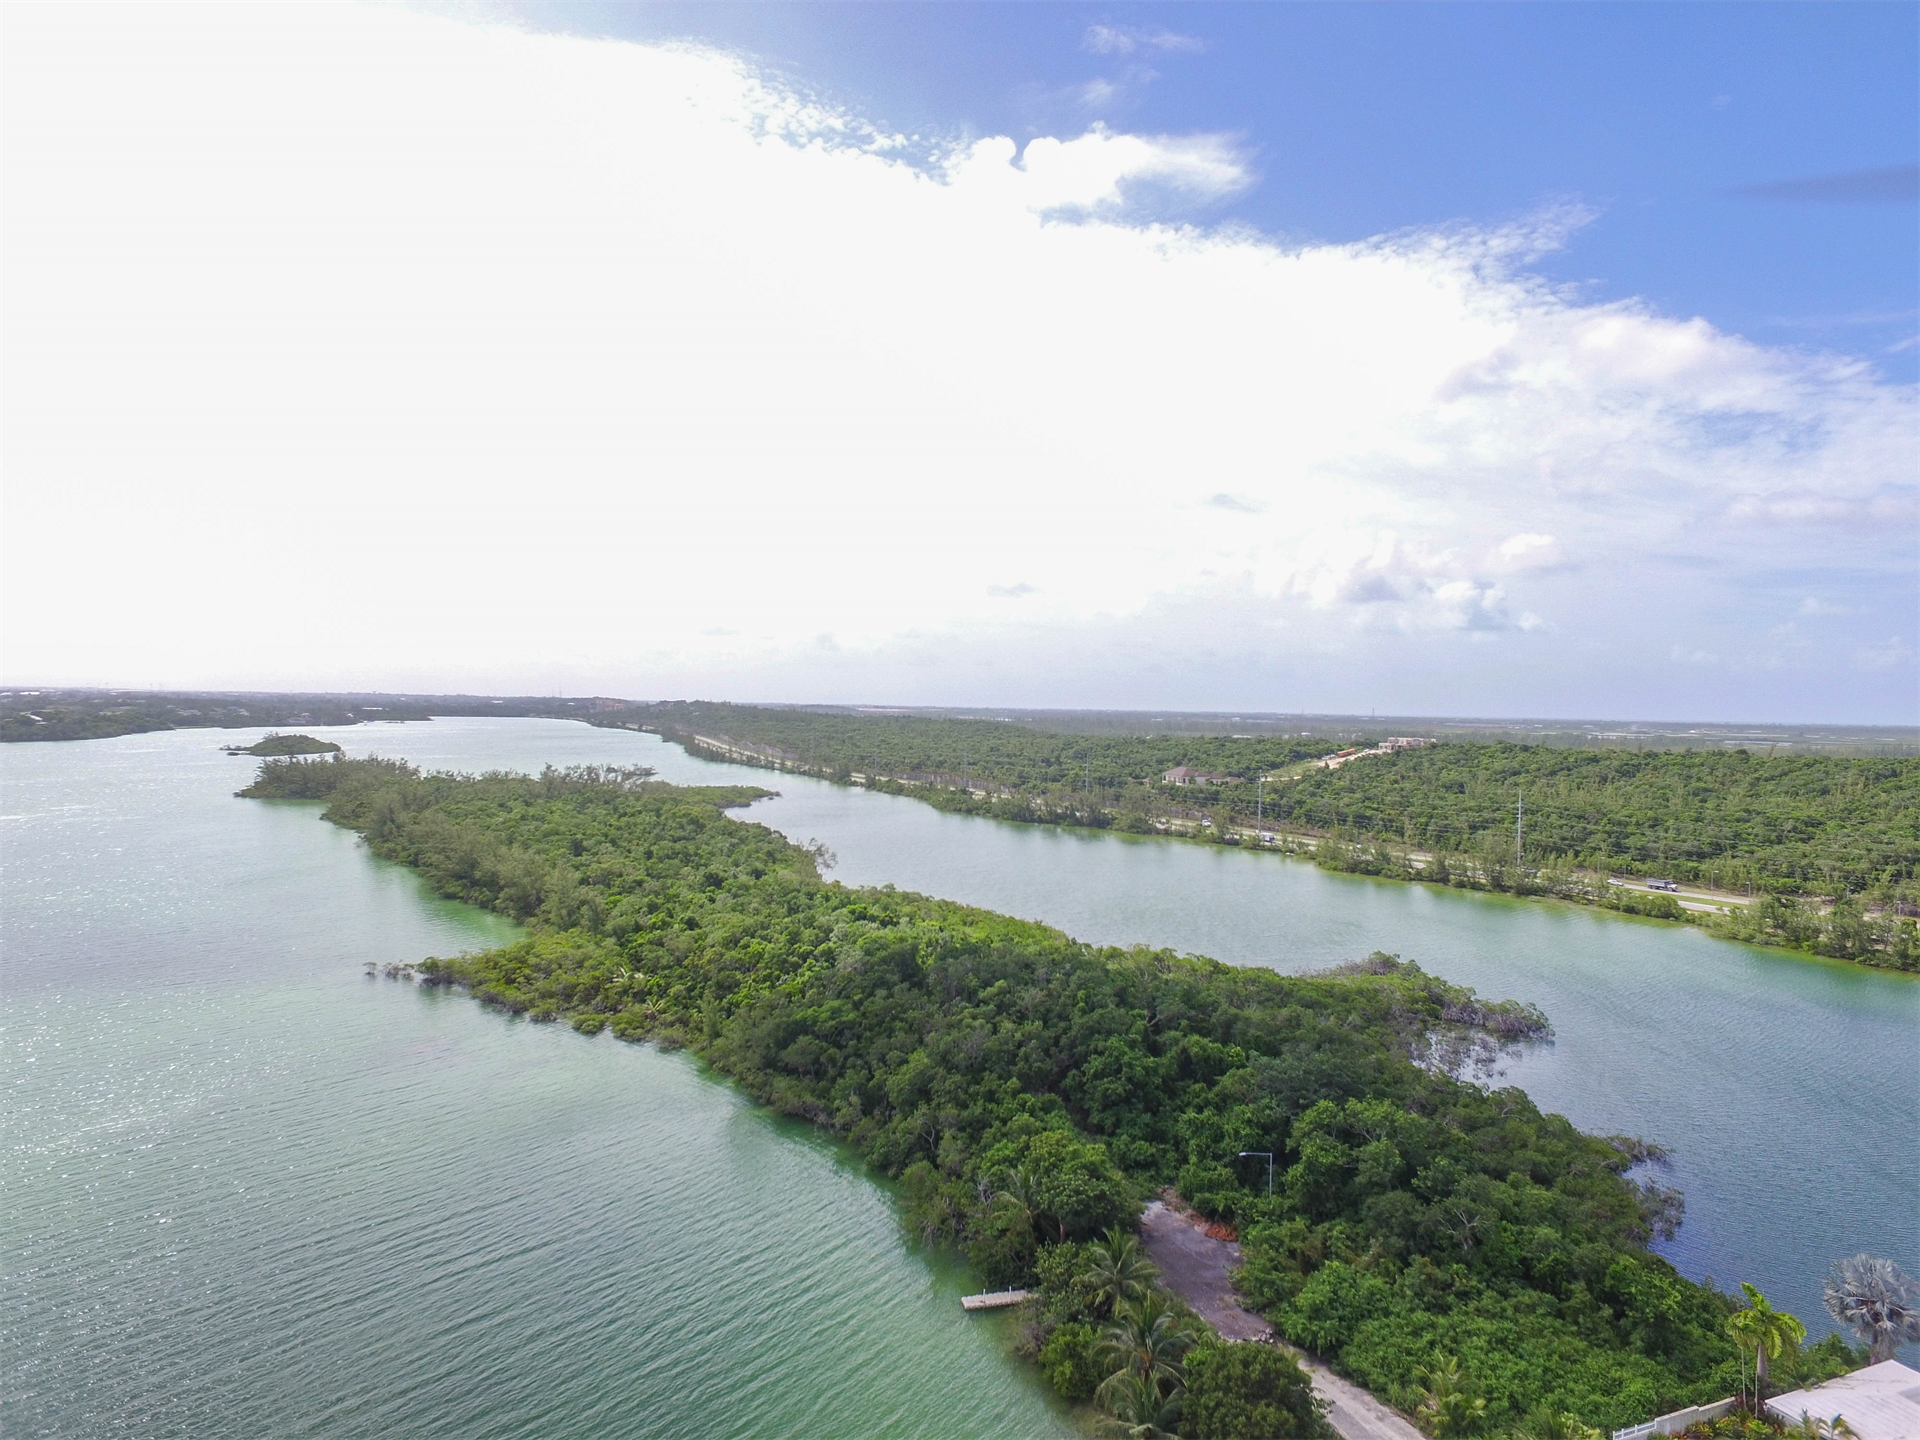 Acreage for Sale at Westridge Acreage Westridge, Nassau And Paradise Island Bahamas